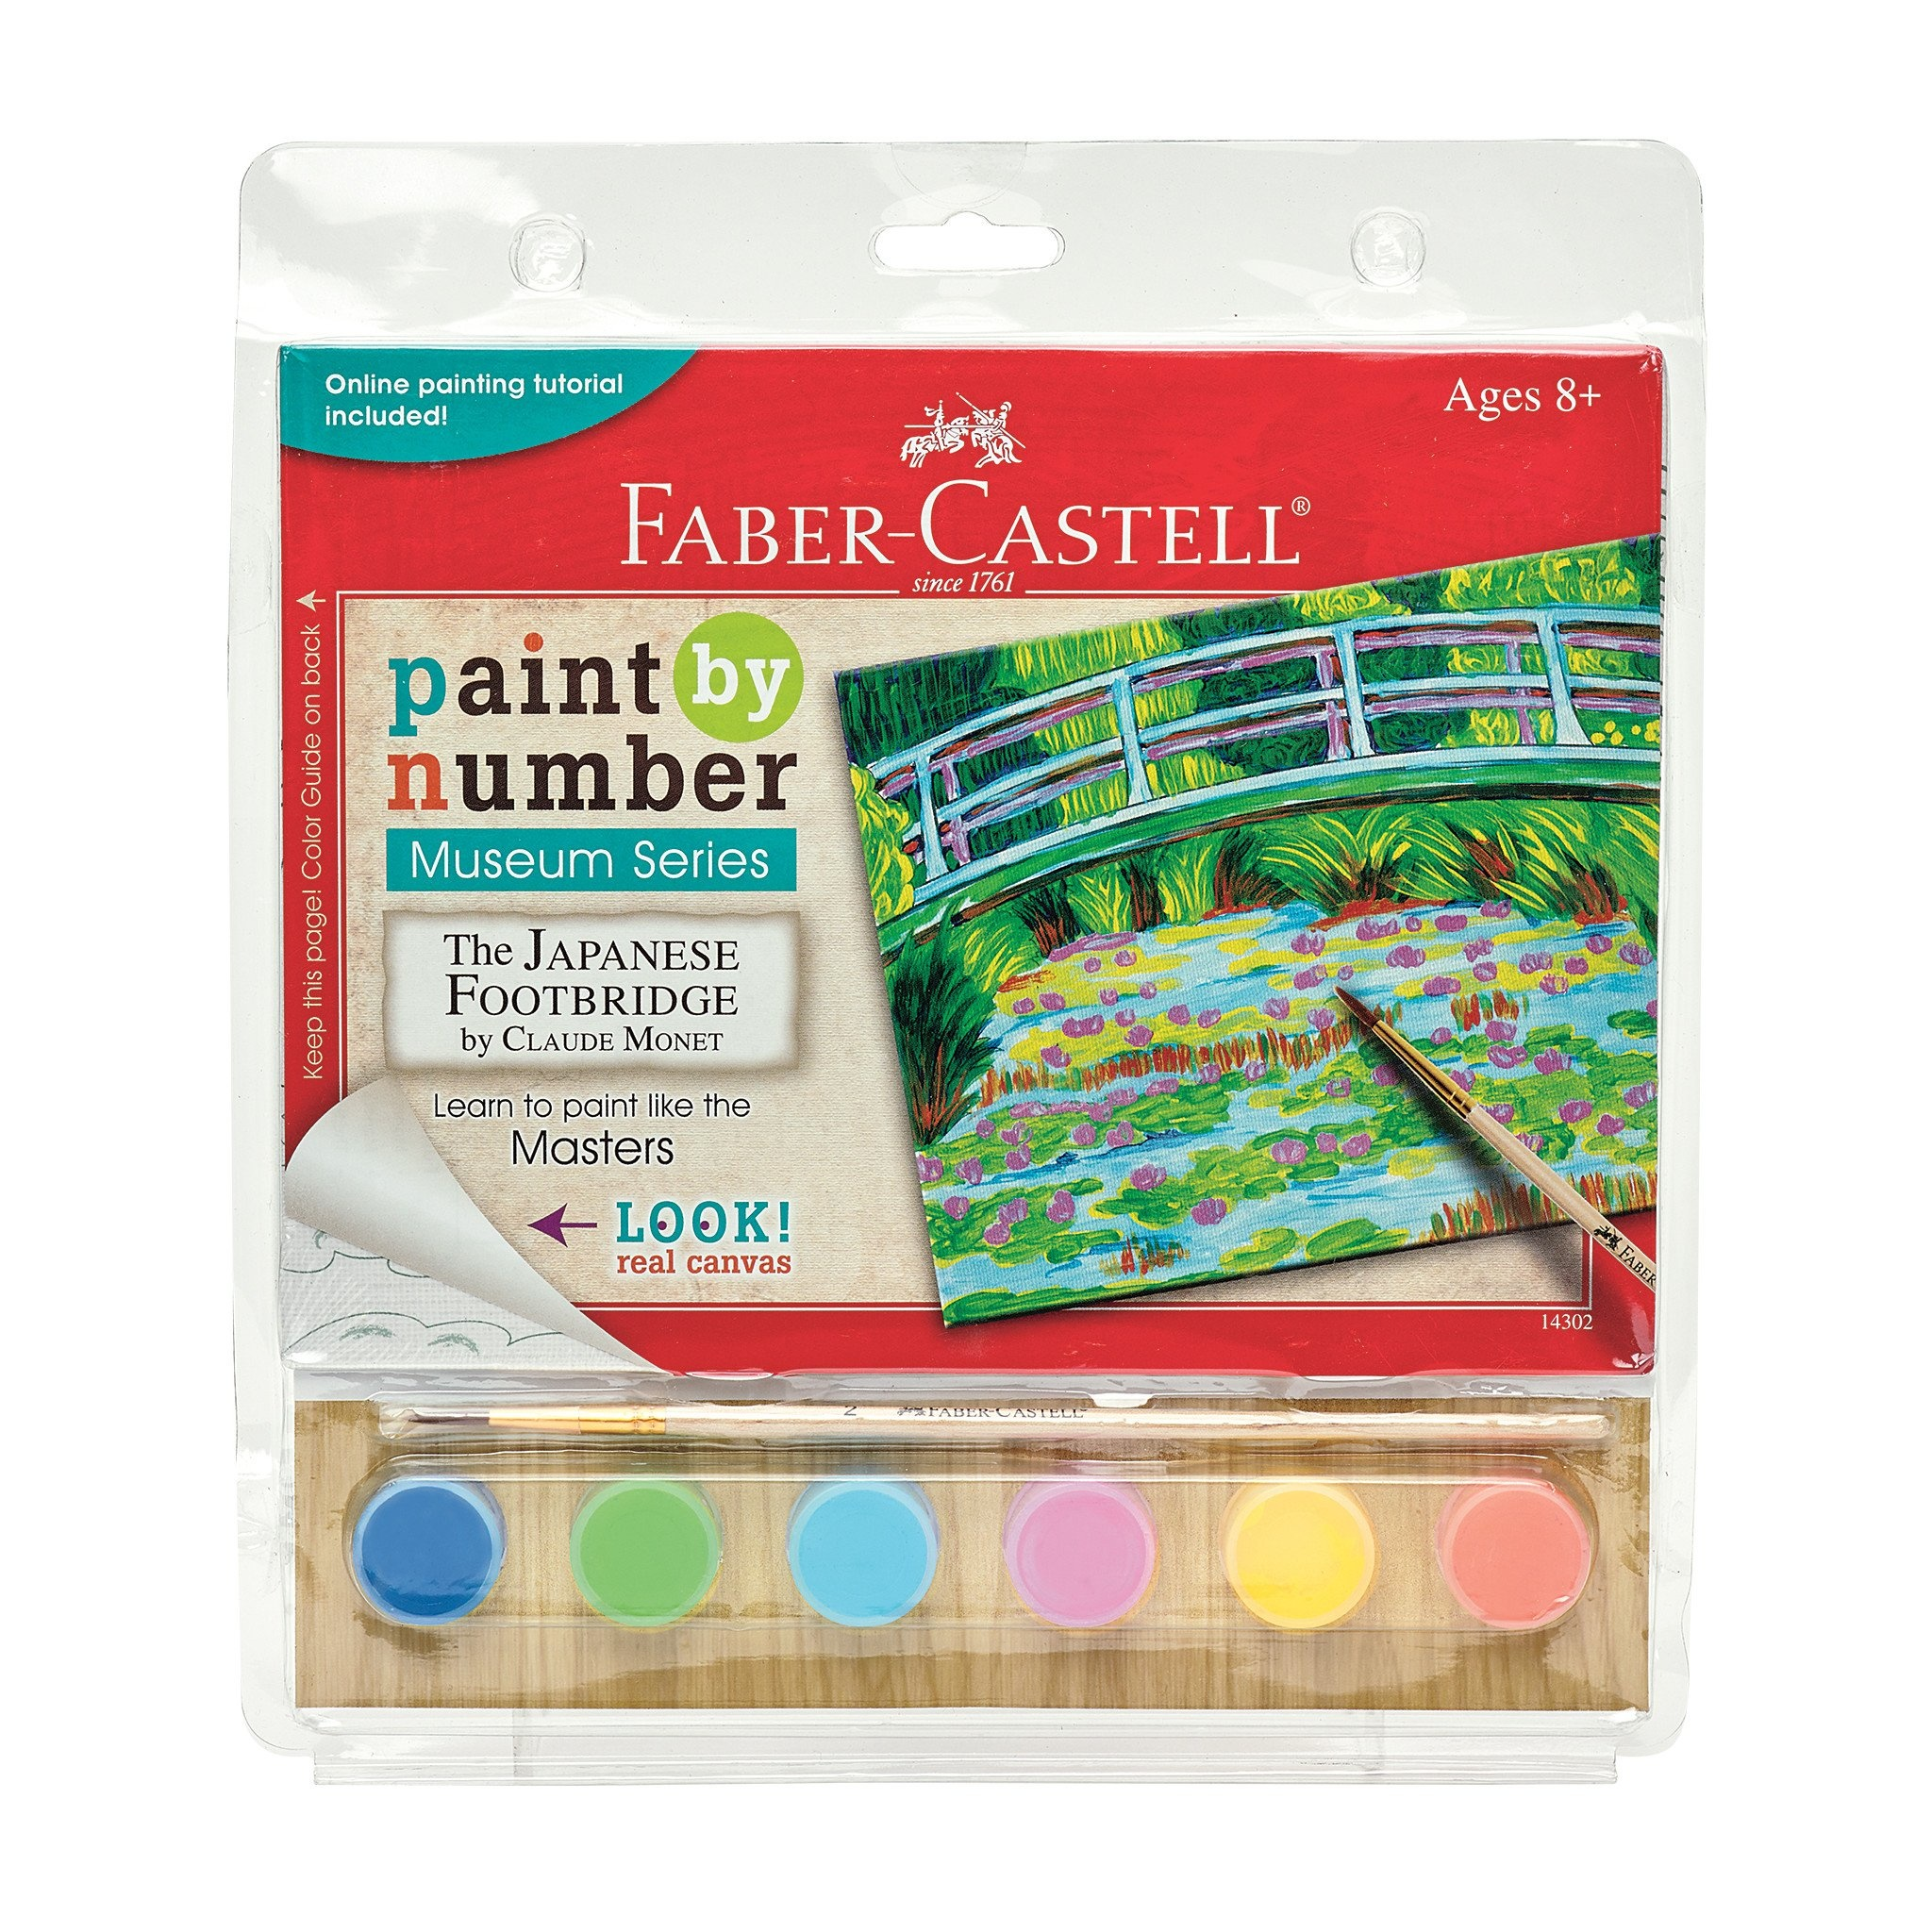 faber castell paintnumber museum series japanese